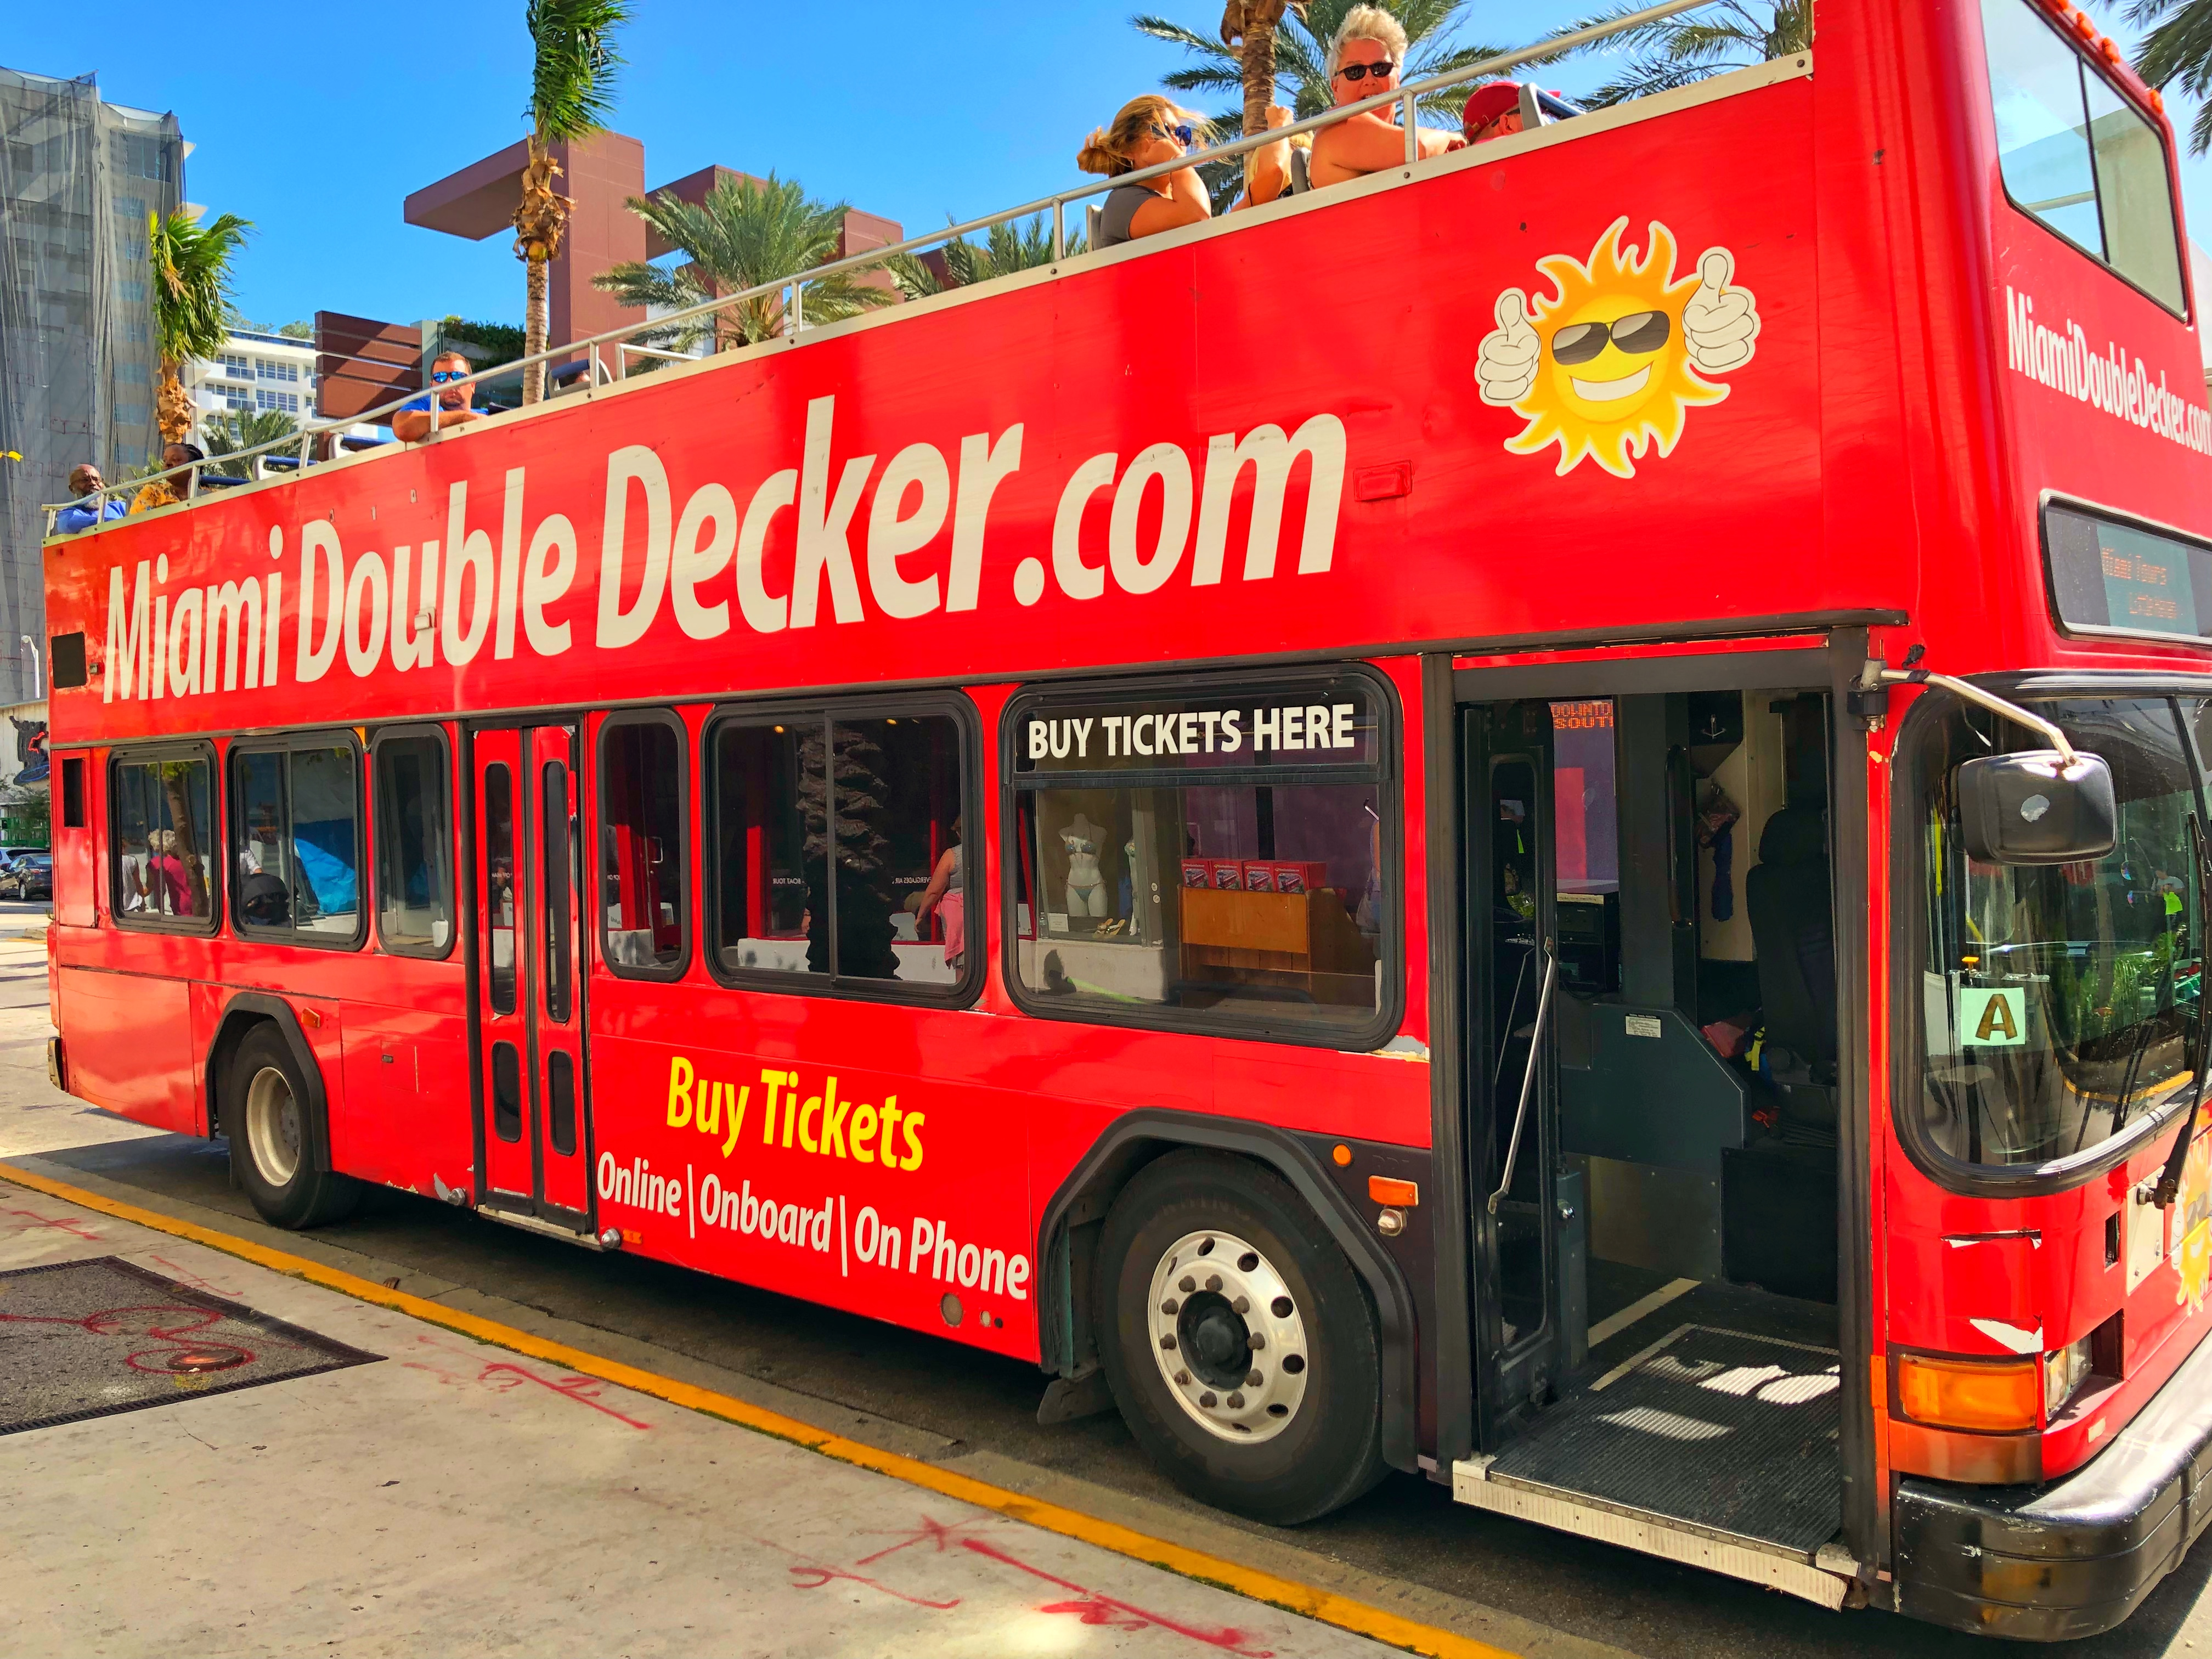 miami-double-decker-bus-tour-hop-on-hop-off-miami-4.jpg